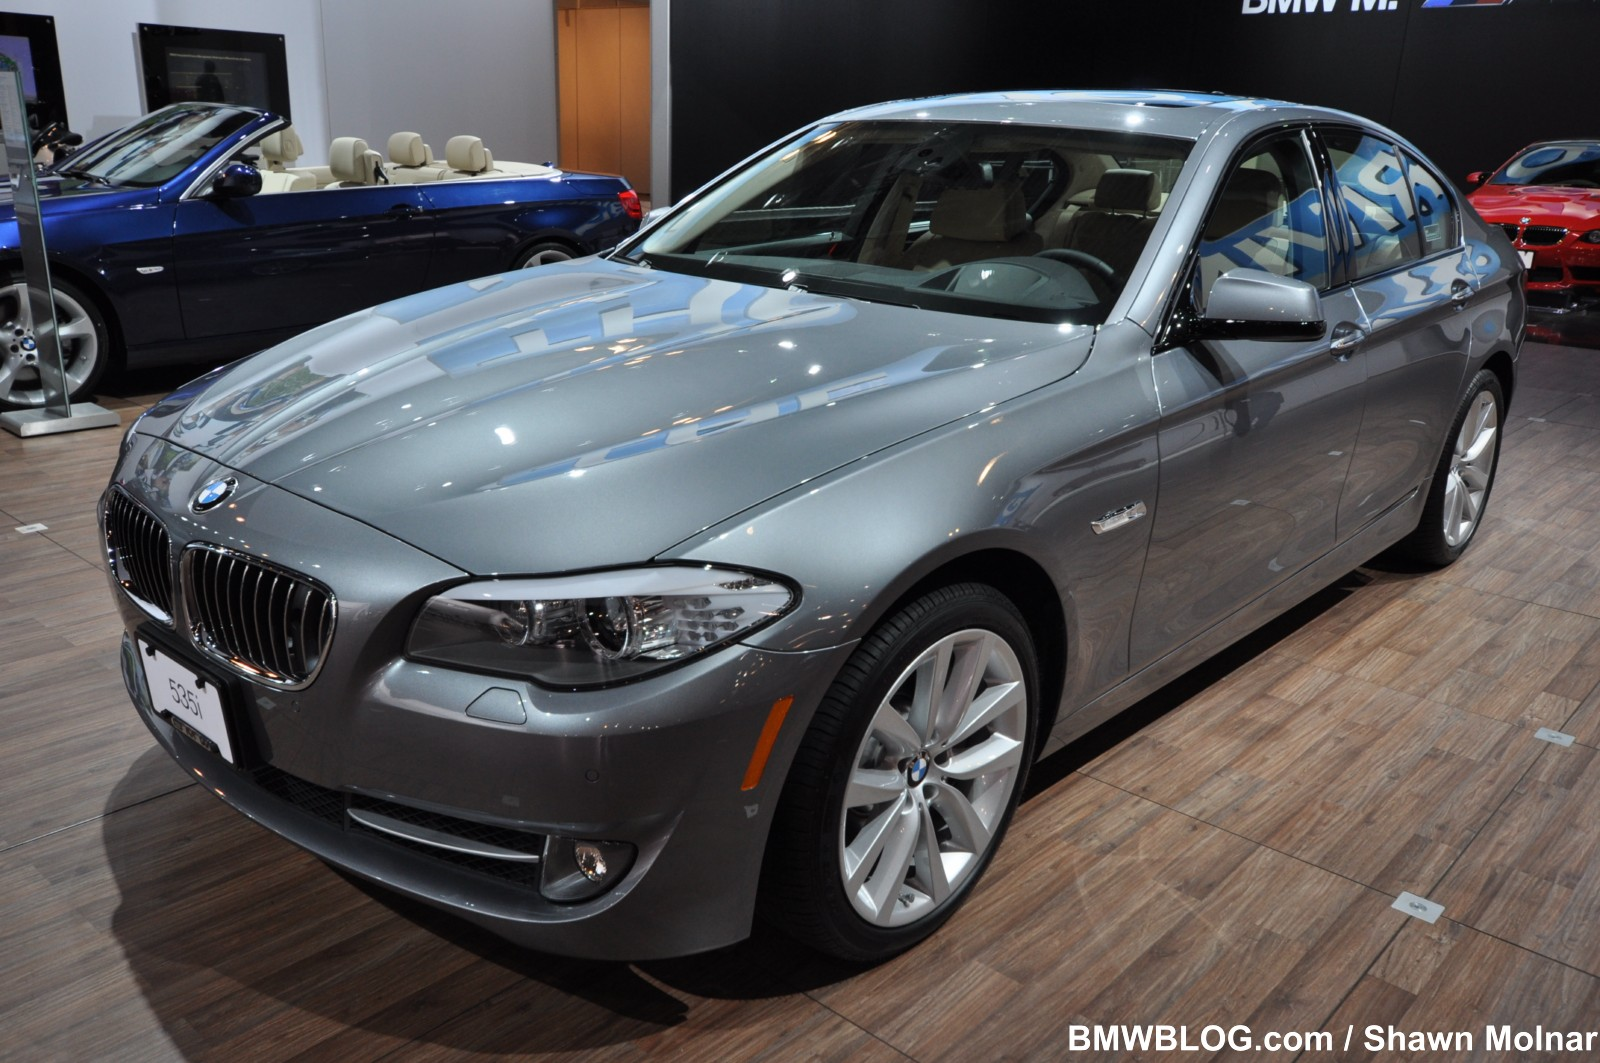 The 2011 BMW 535i runs from 0 to 100 km/h (62 mph) in just 5.9 seconds.